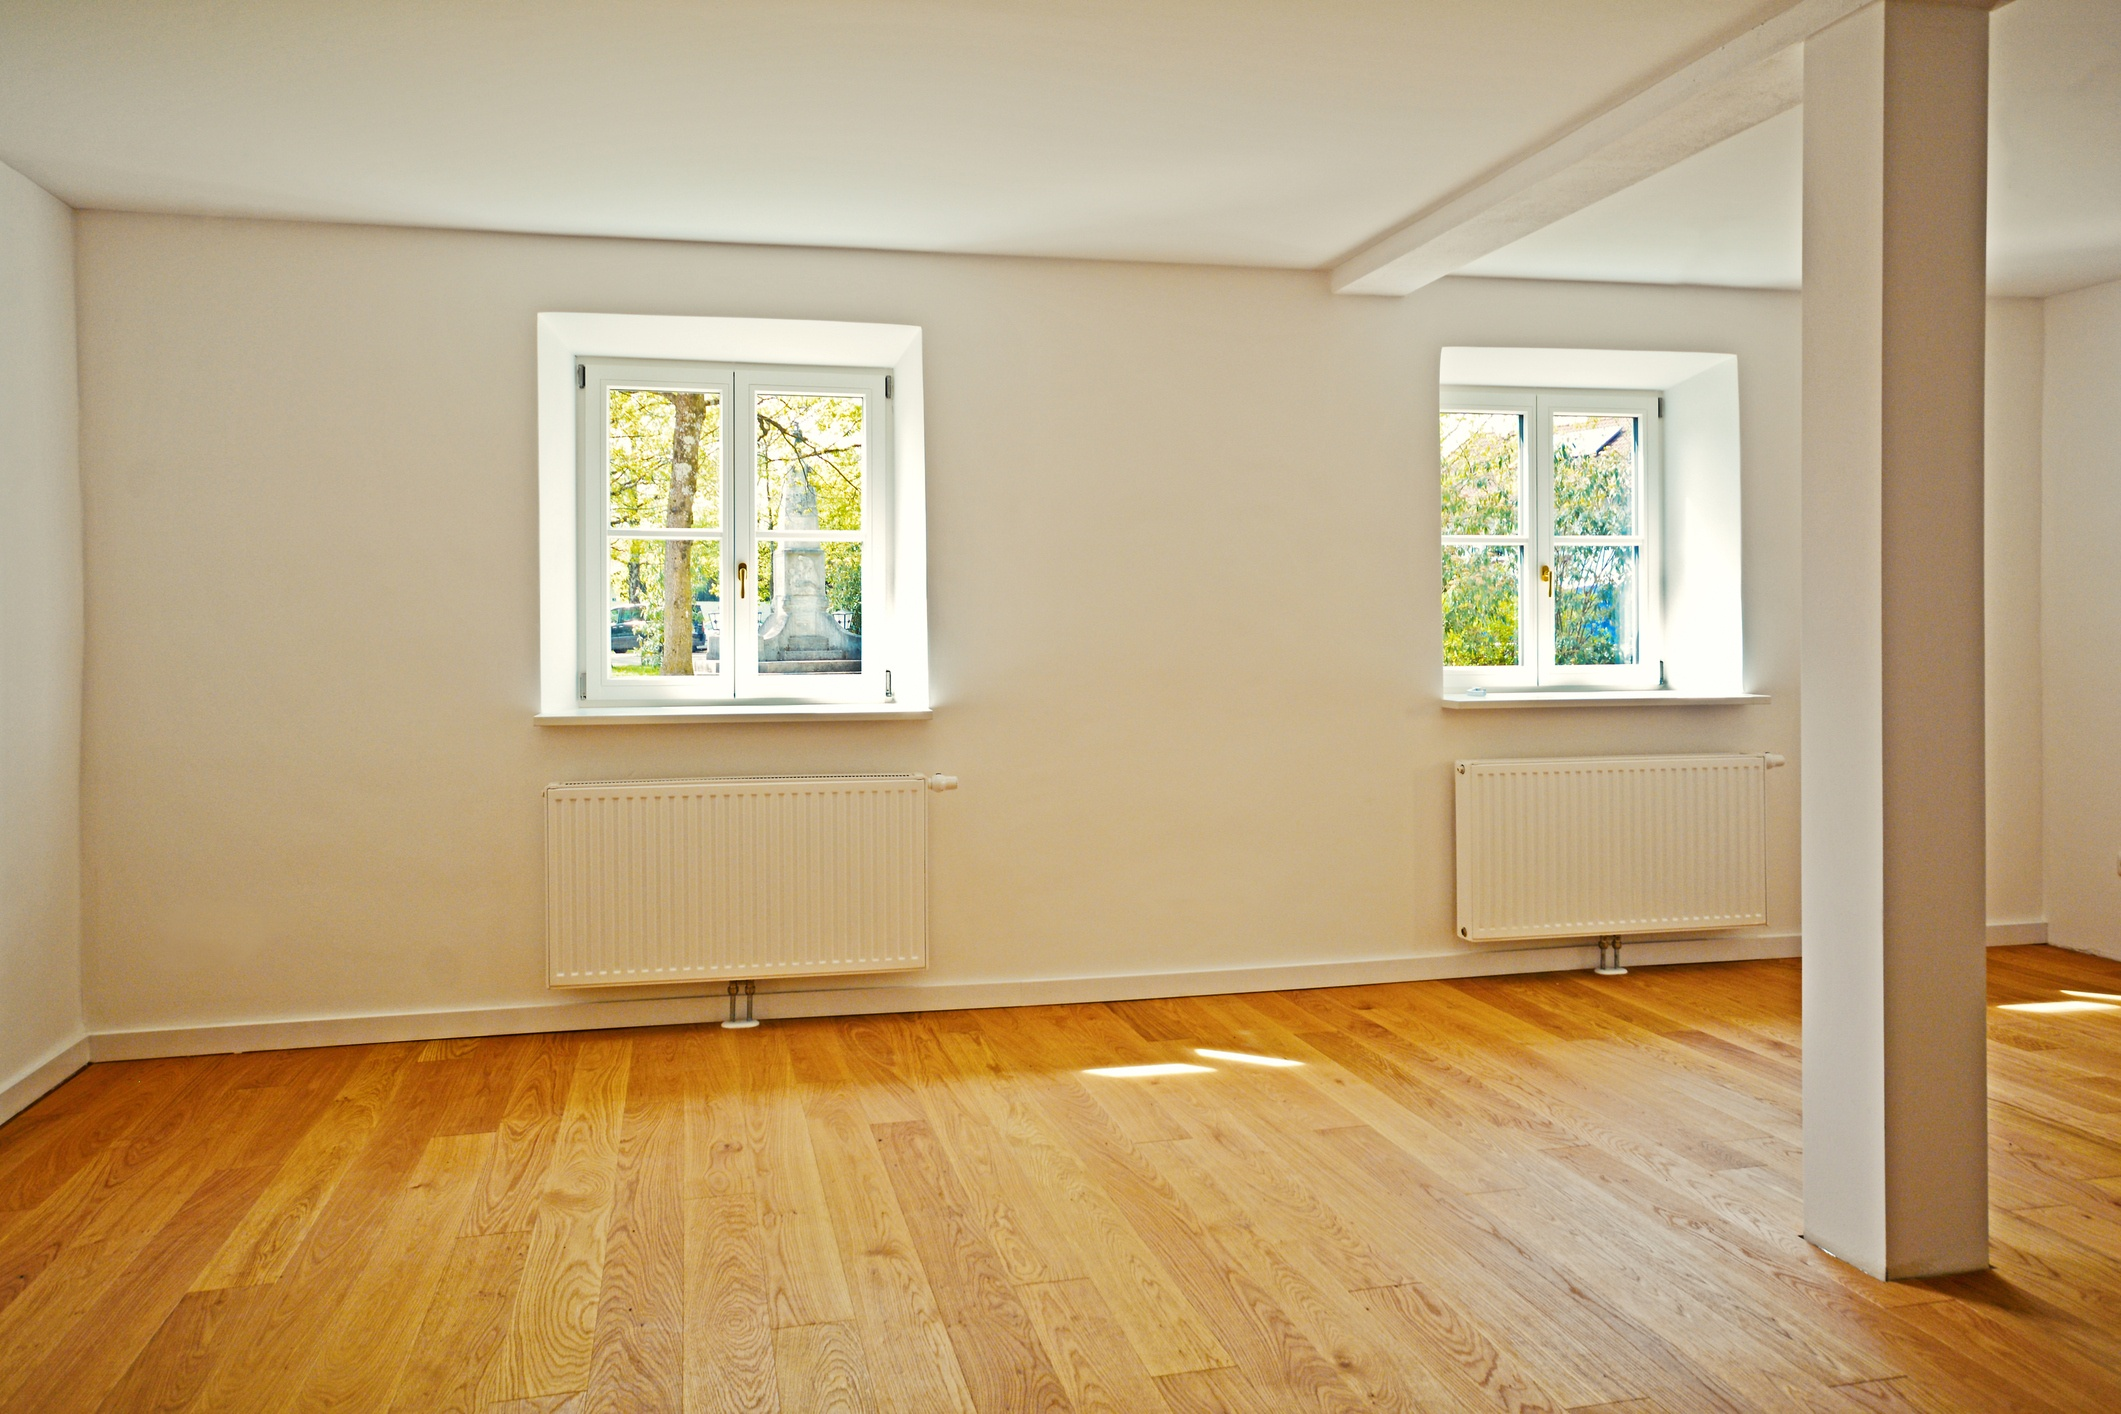 Empty Living room in an old building, Apartment with parquet flooring